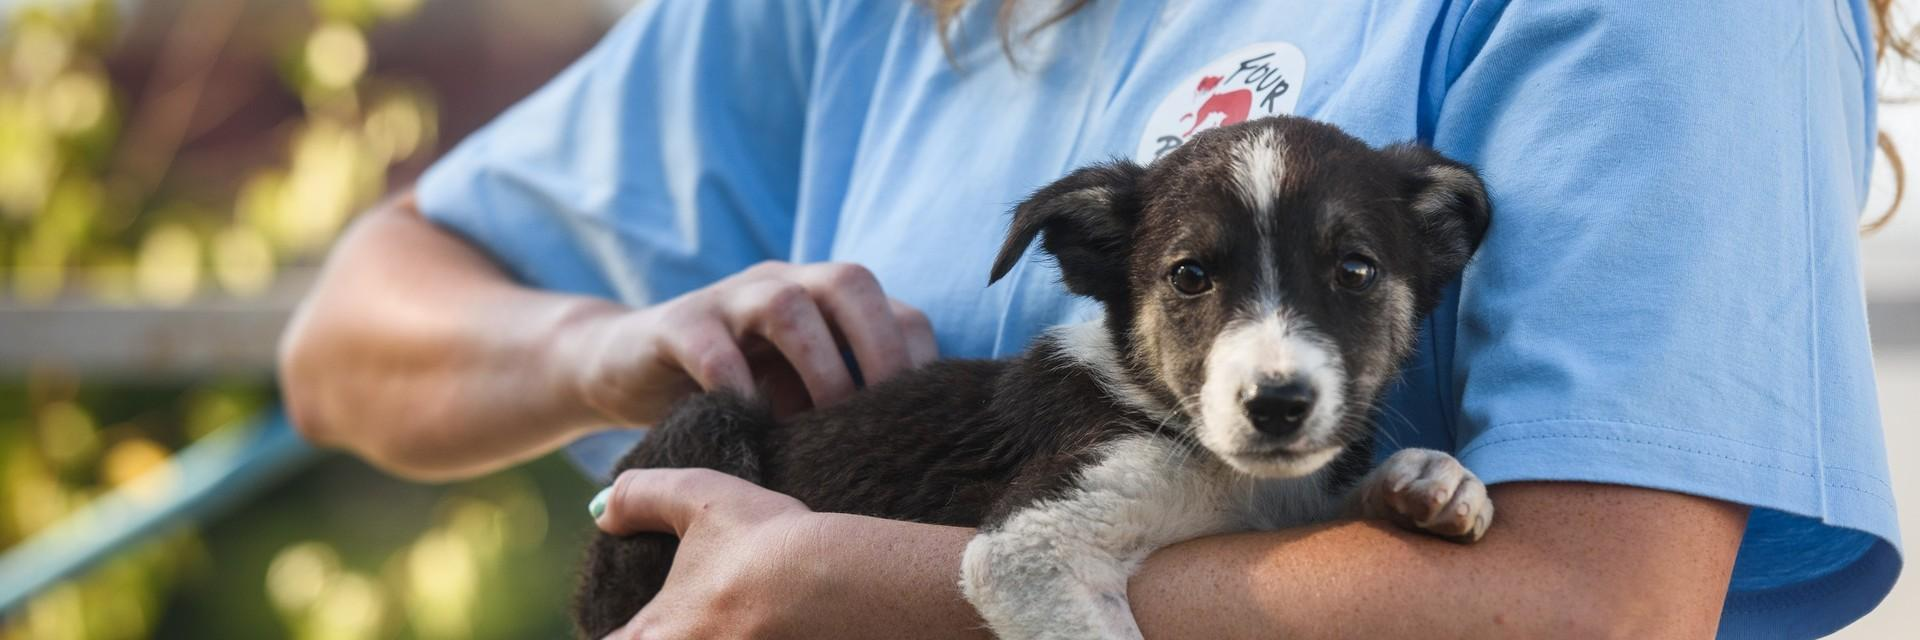 Stray puppy being held by rescuer